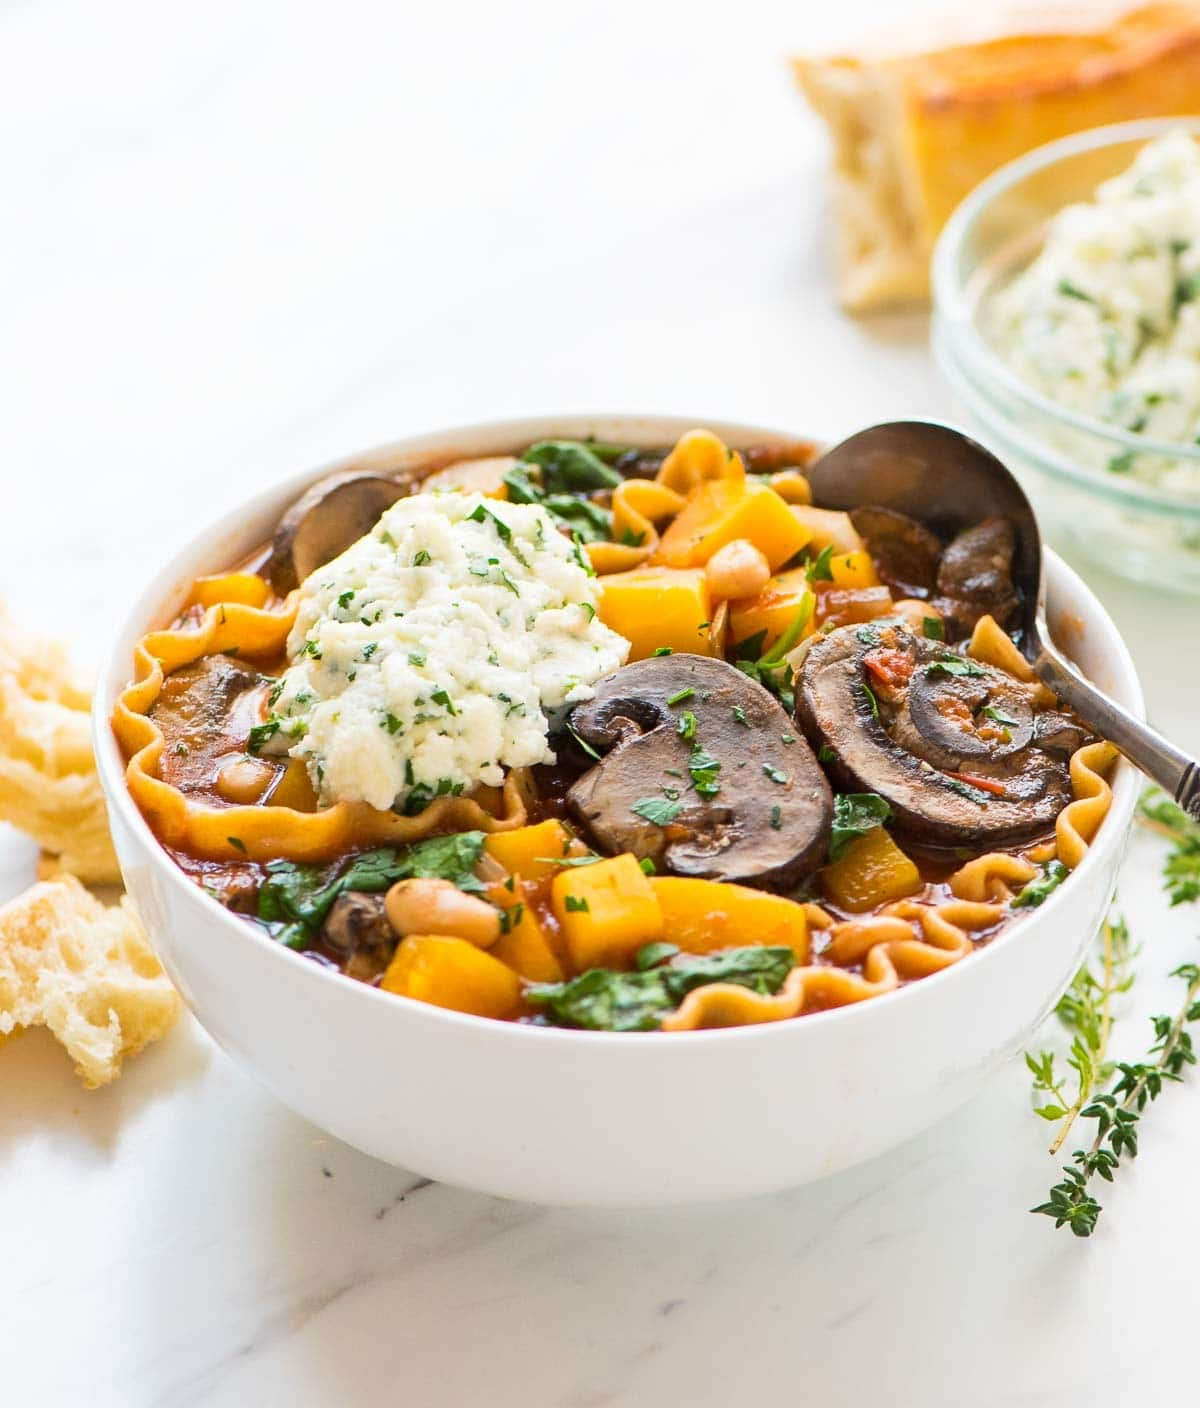 Easy Crockpot Lasagna Soup. Tastes just like lasagna, but is so much easier! The slow cooker does the work. Delicious, healthy vegetarian recipe that your whole family will love. Recipe at wellplated.com | @wellplated